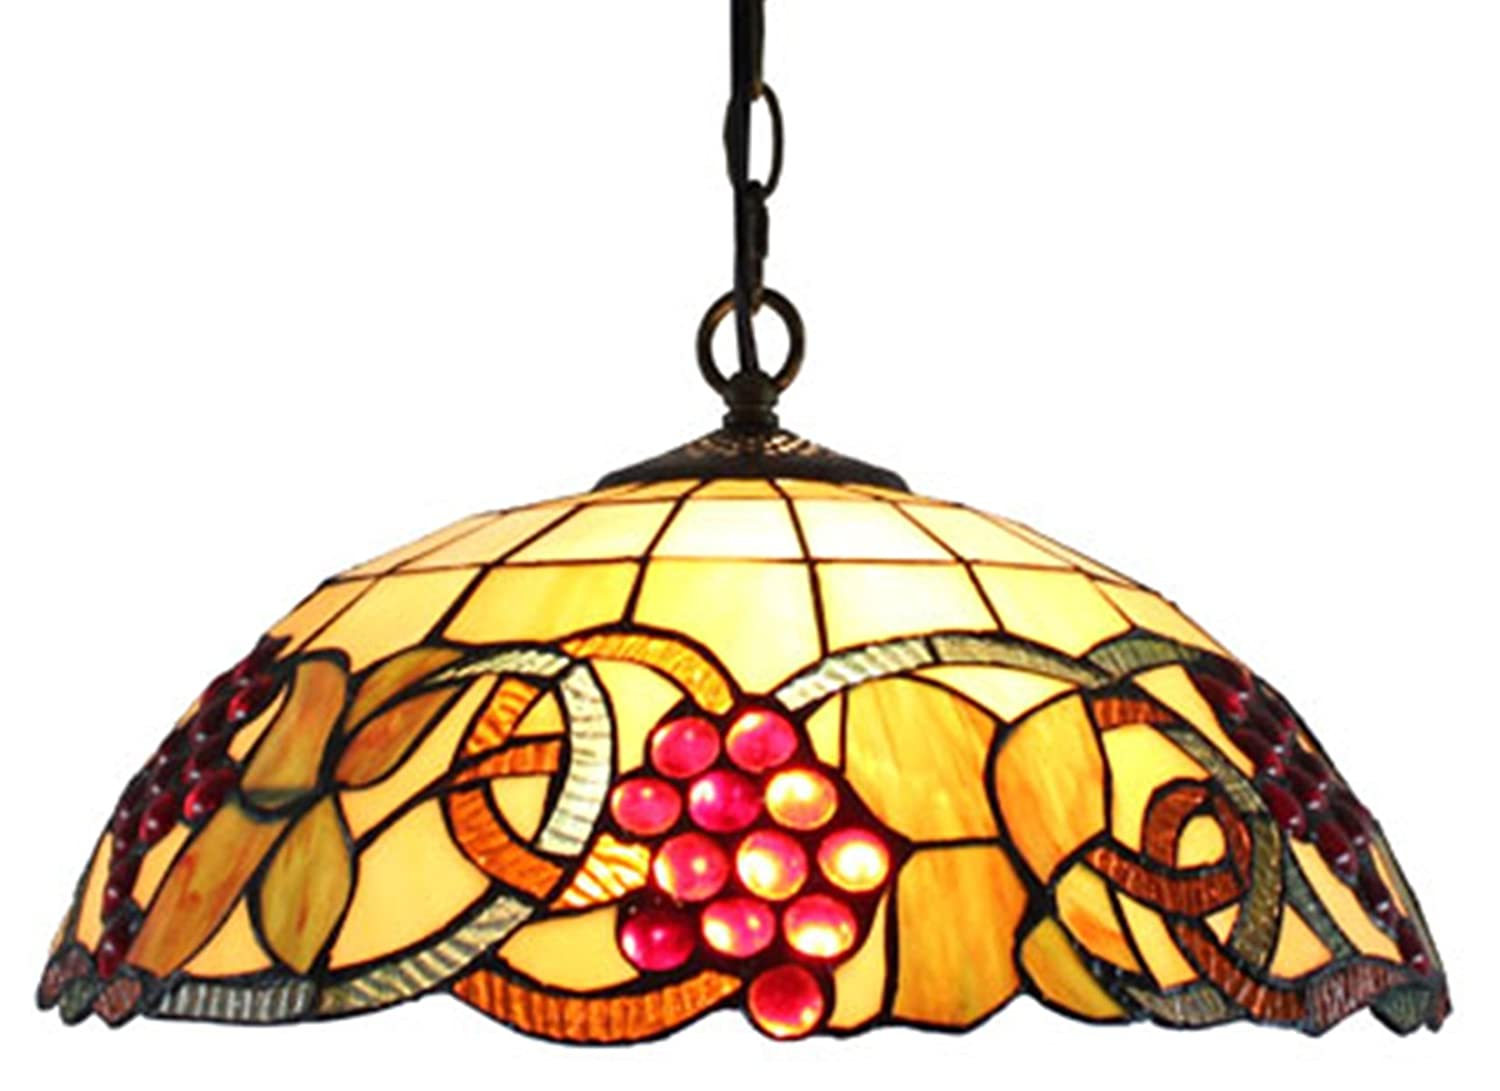 tiffany style pendant light fixture. Amora Lighting AM1040HL16 Tiffany Style Colorful Hanging Pendant Ceiling Lamp, 16\ Light Fixture F